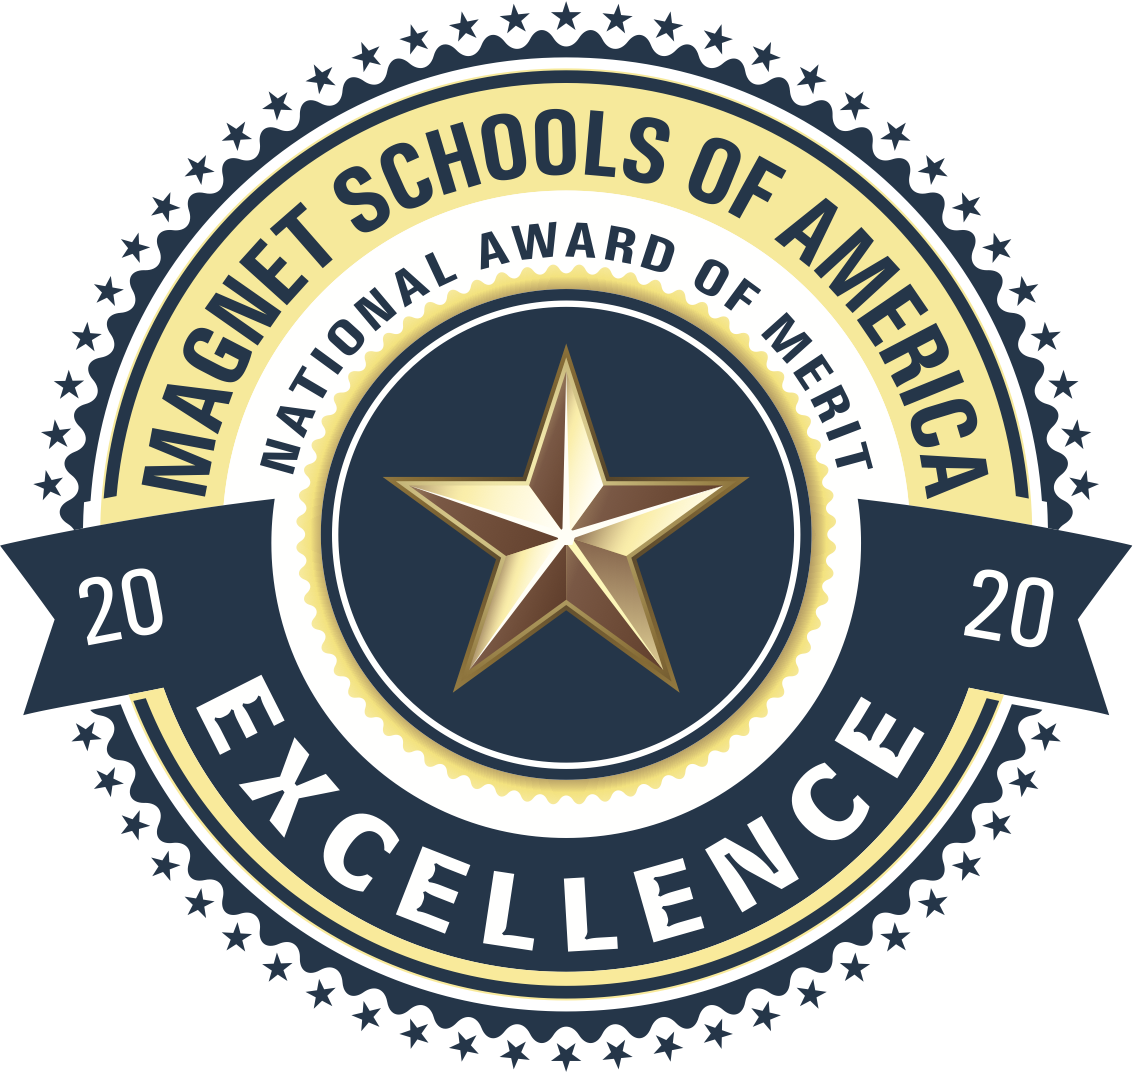 2020 Magnet School of Excellence